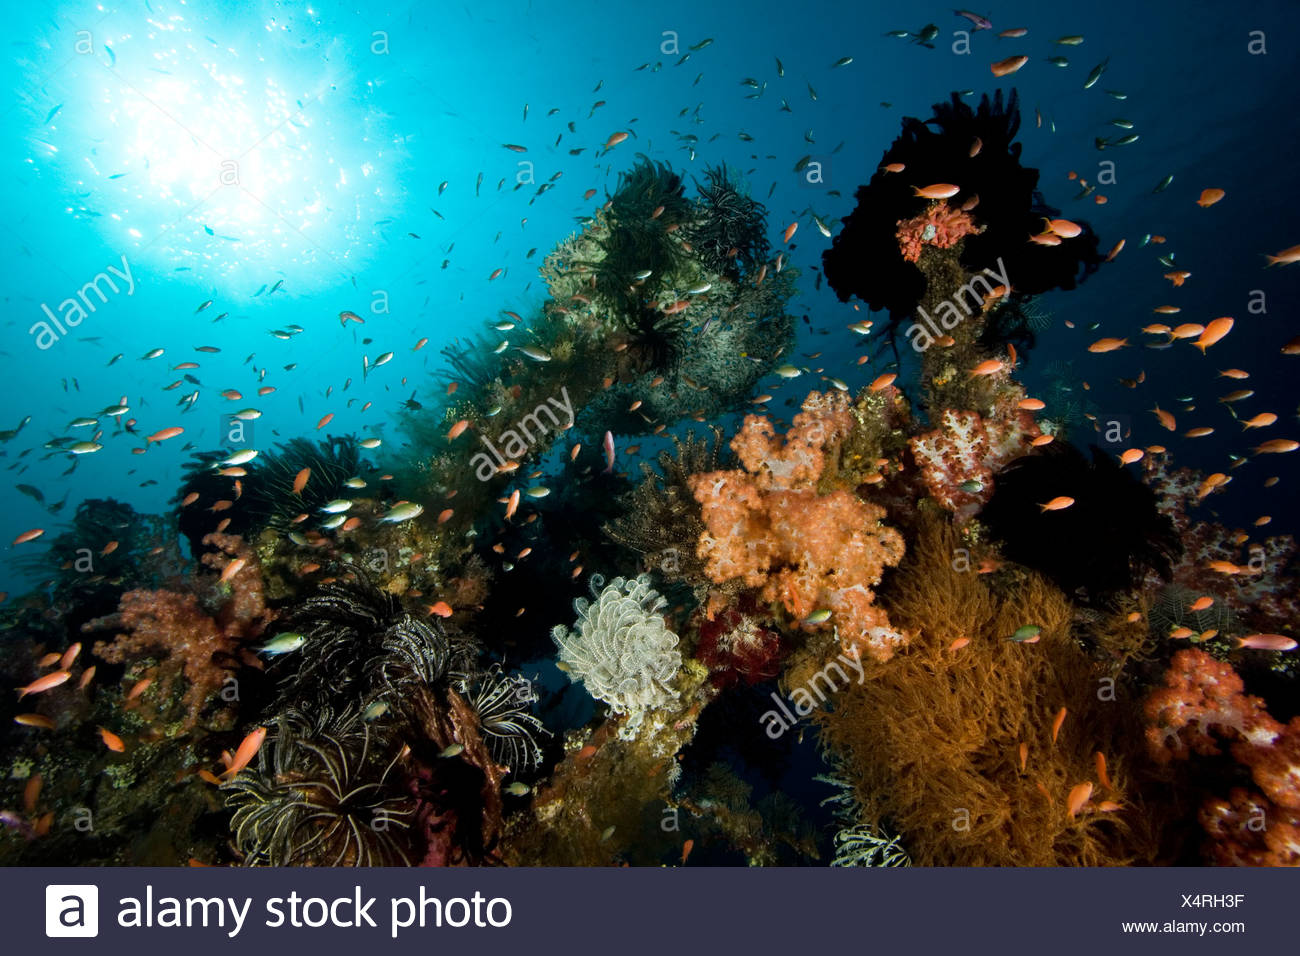 Coral and fish cover the wreck of the ship 'Liberty', sunk in 1942. - Stock Image